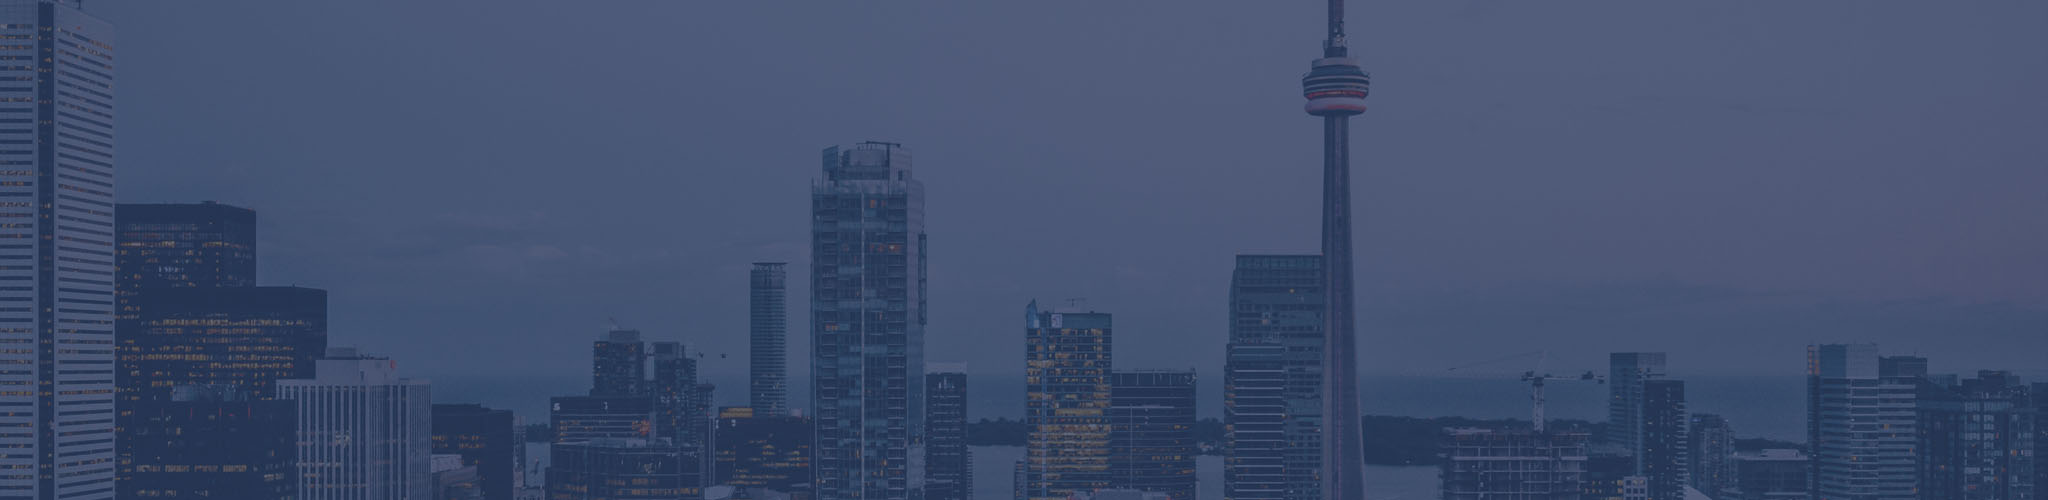 Photograph of downtown Toronto skyline with blue overlay.